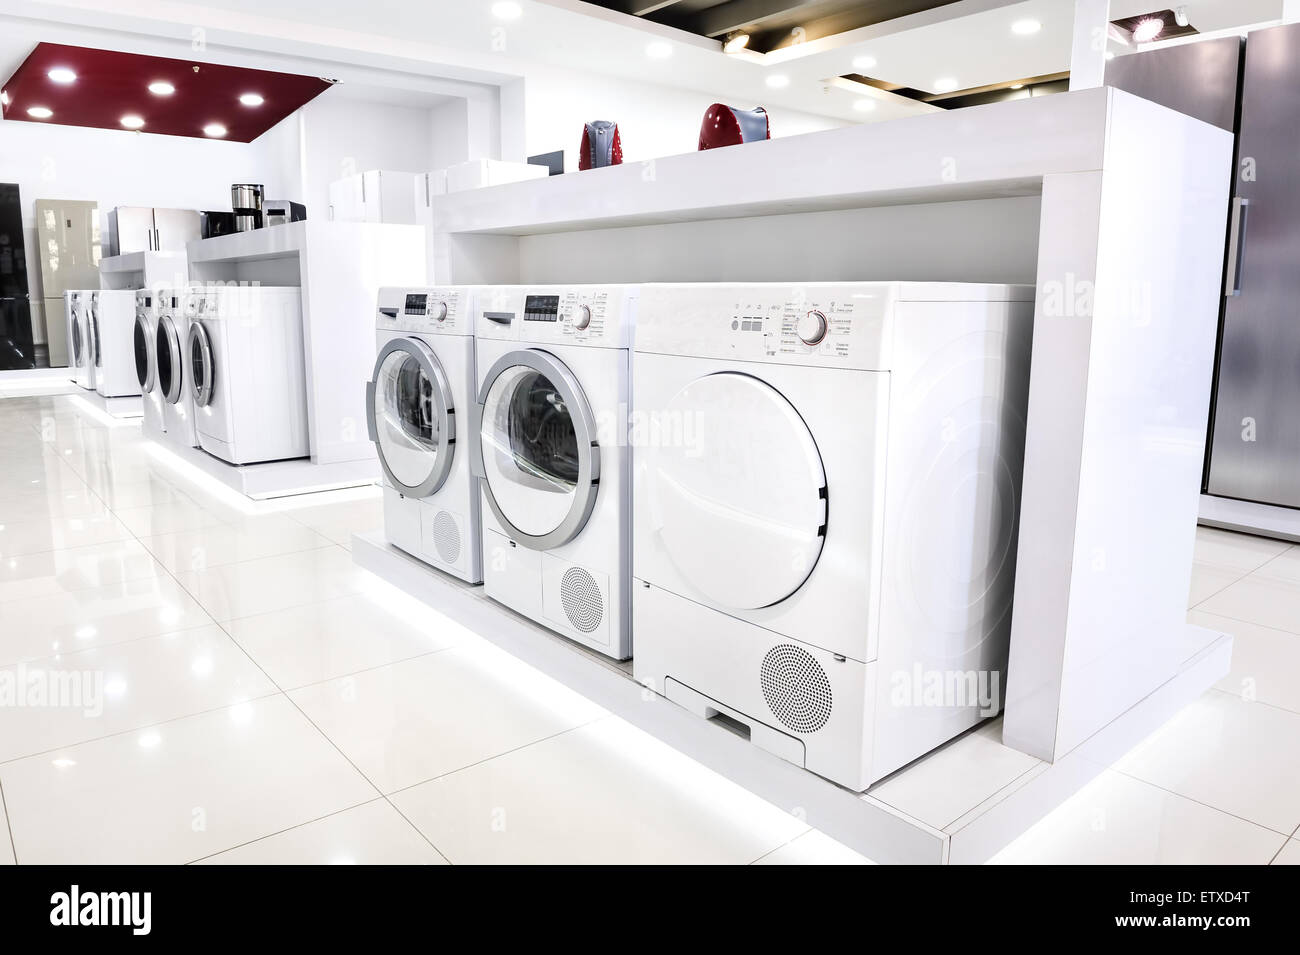 Uncategorized Appliance Stores Kitchener appliance stores kitchener tboots us washing machines for sale in a store exeter uk stock photo kitchener